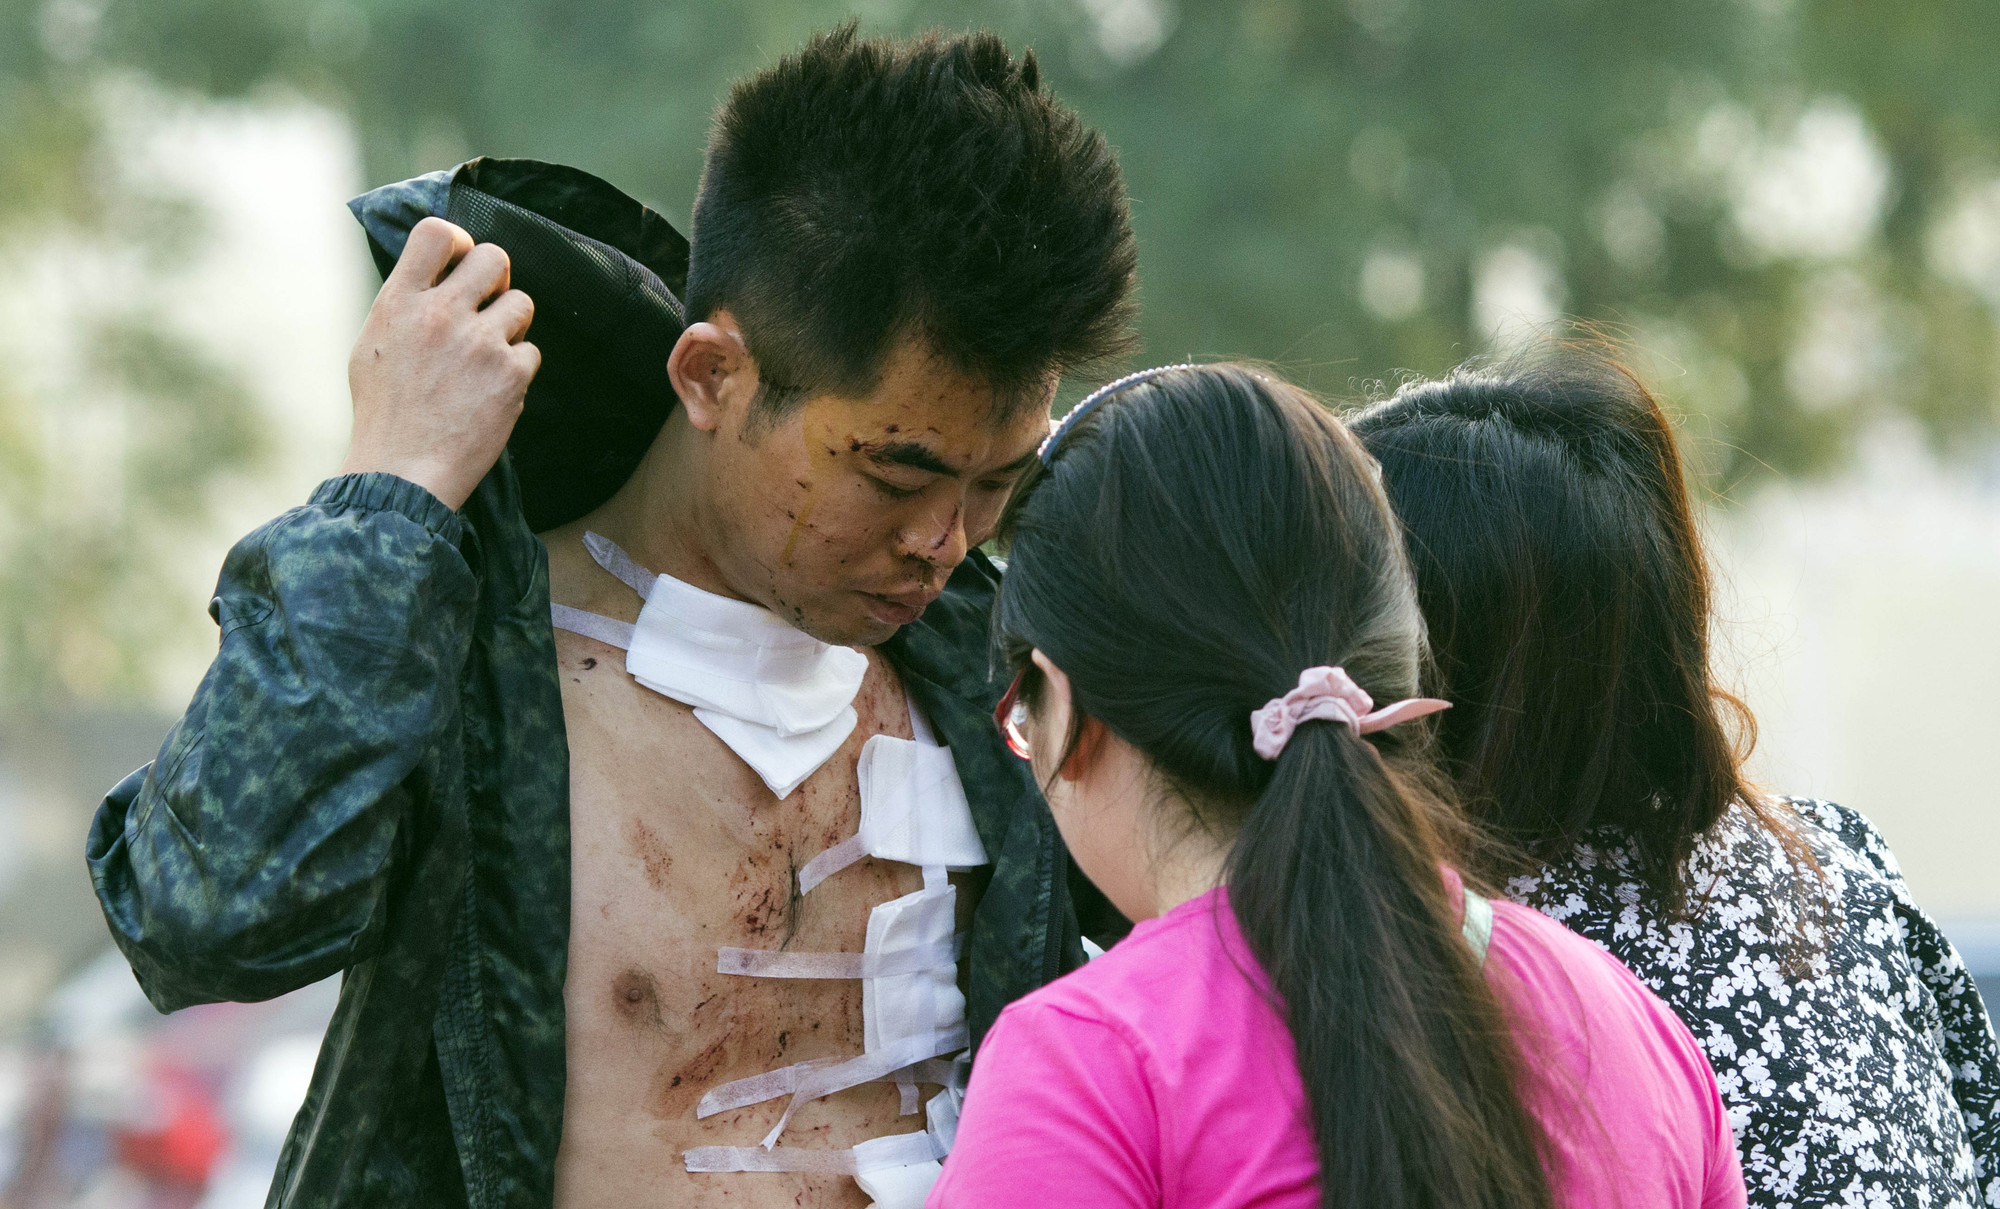 5 - According to the Tianjin government, more than 700 people were injured  by the